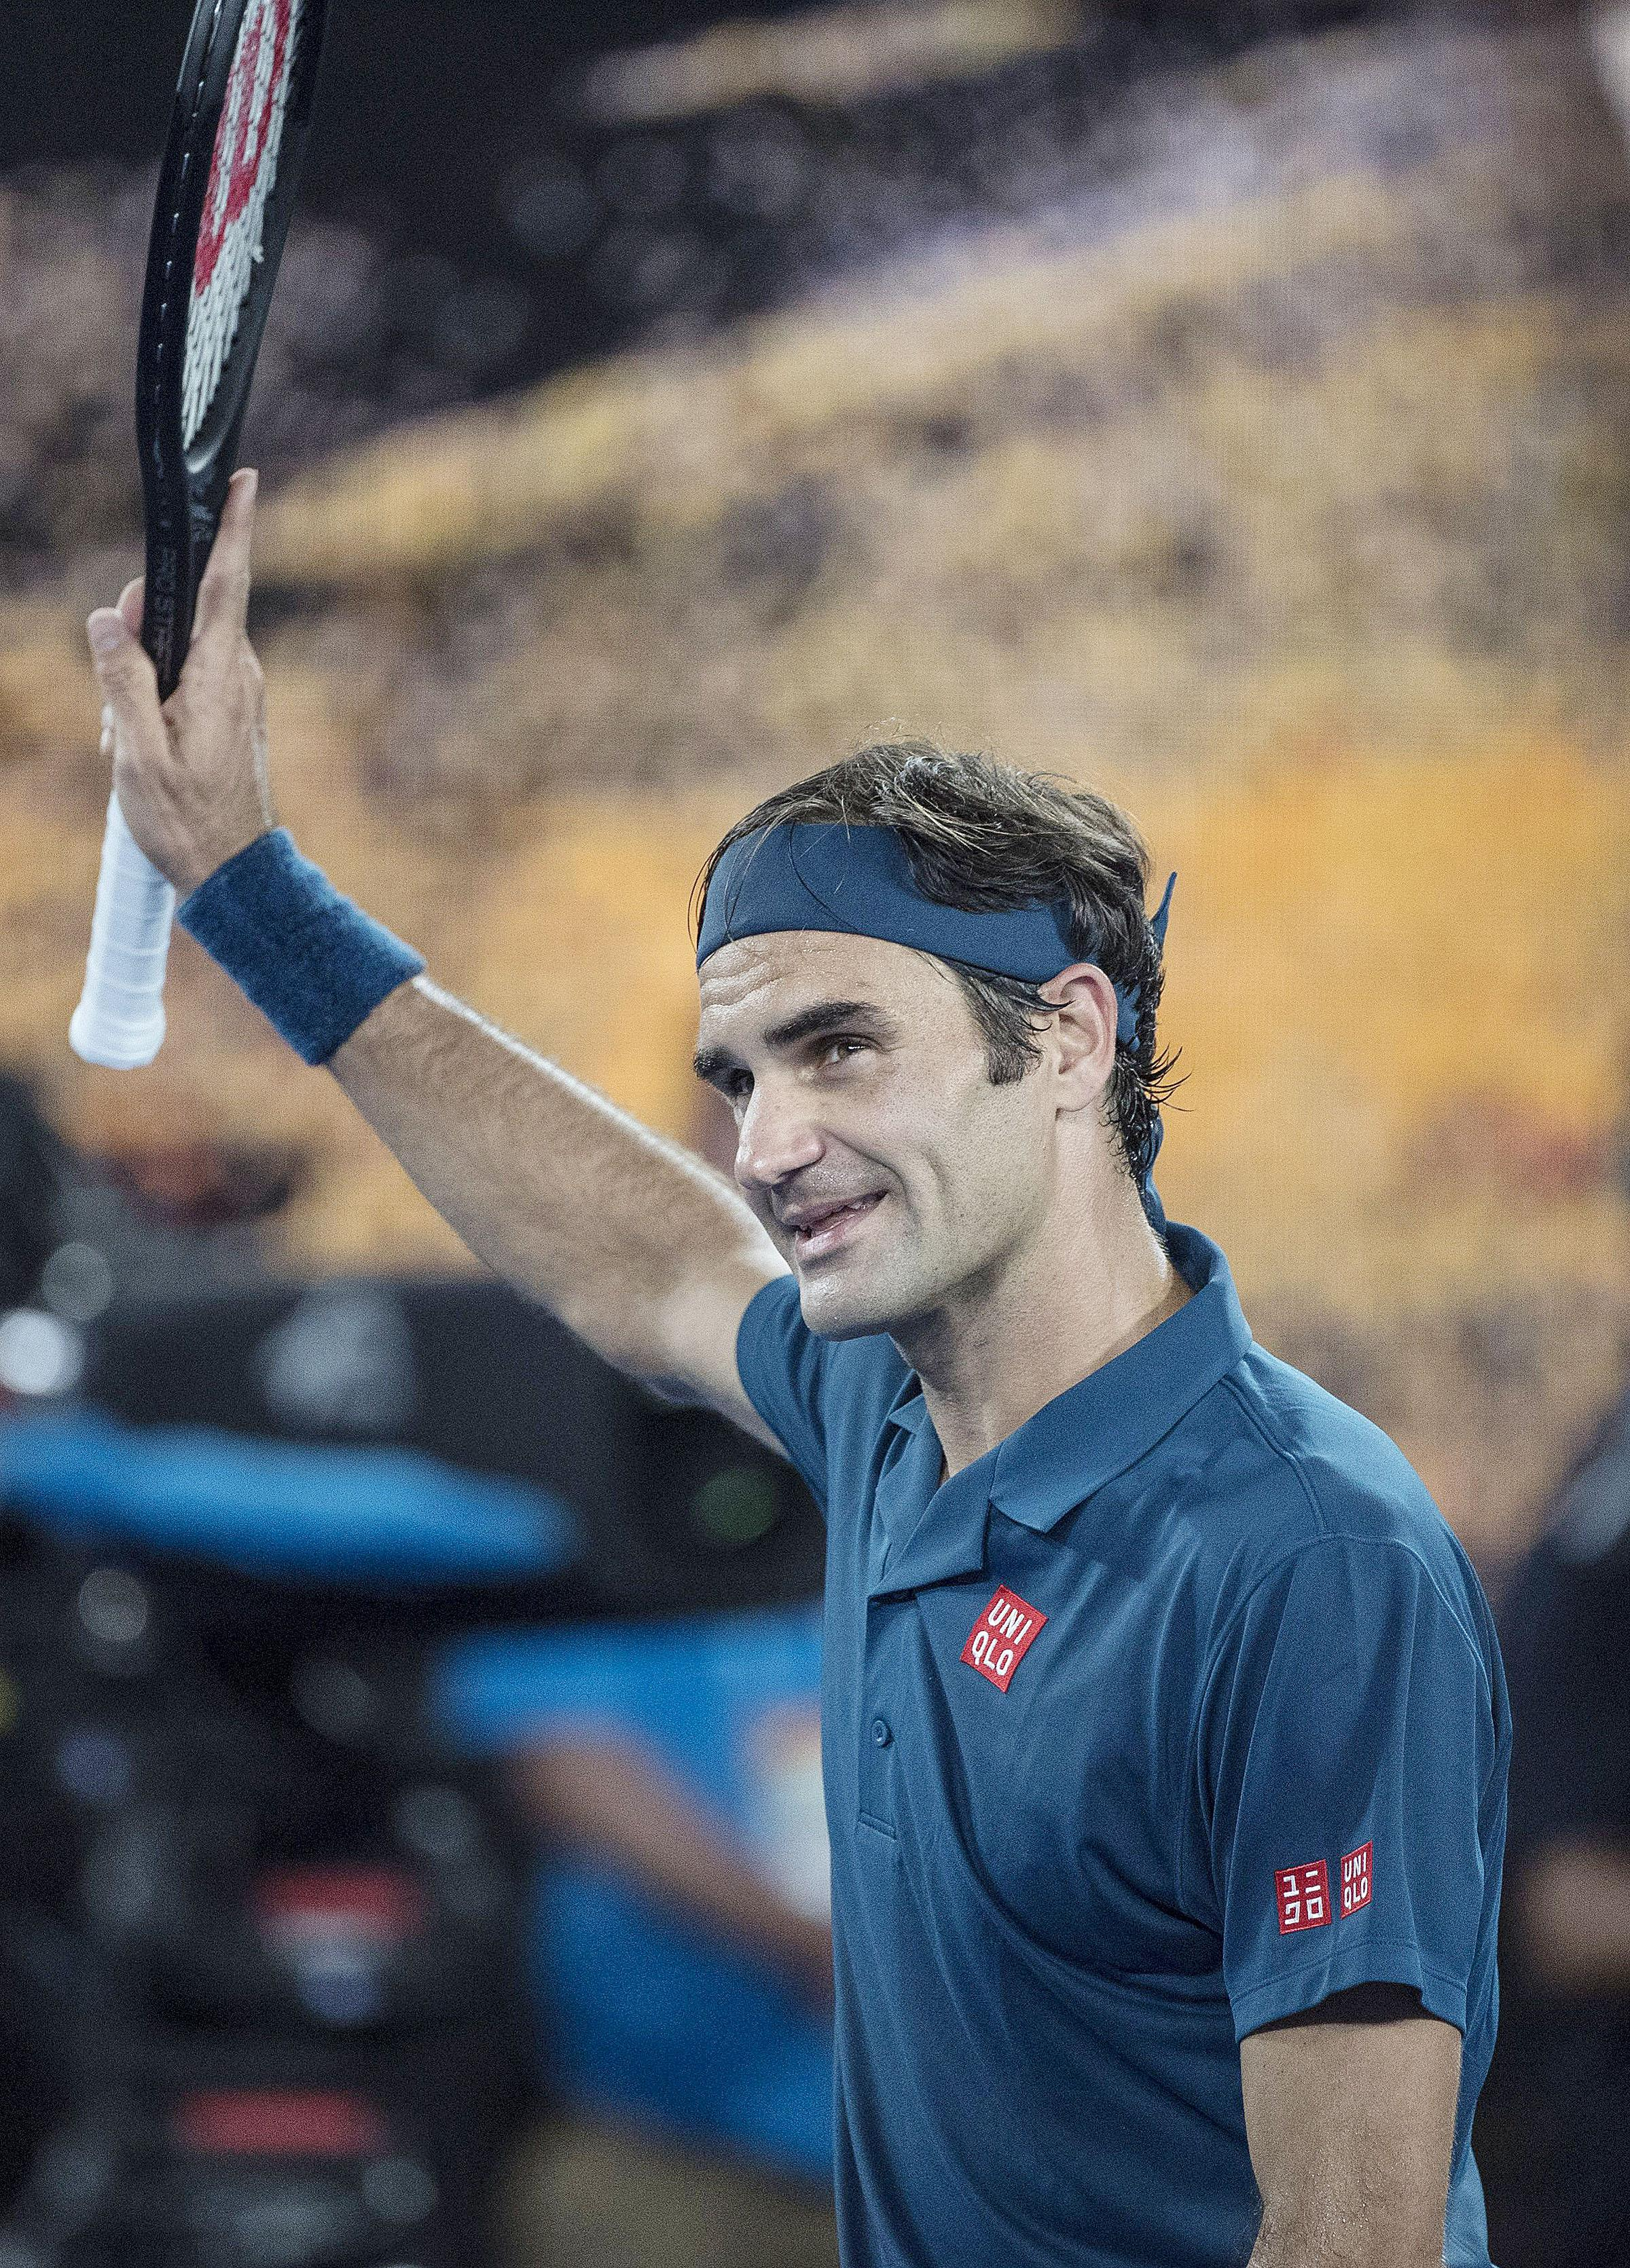 Swiss maestro Federer could be playing in his last Australian Open but has not made any commitments on retirement yet